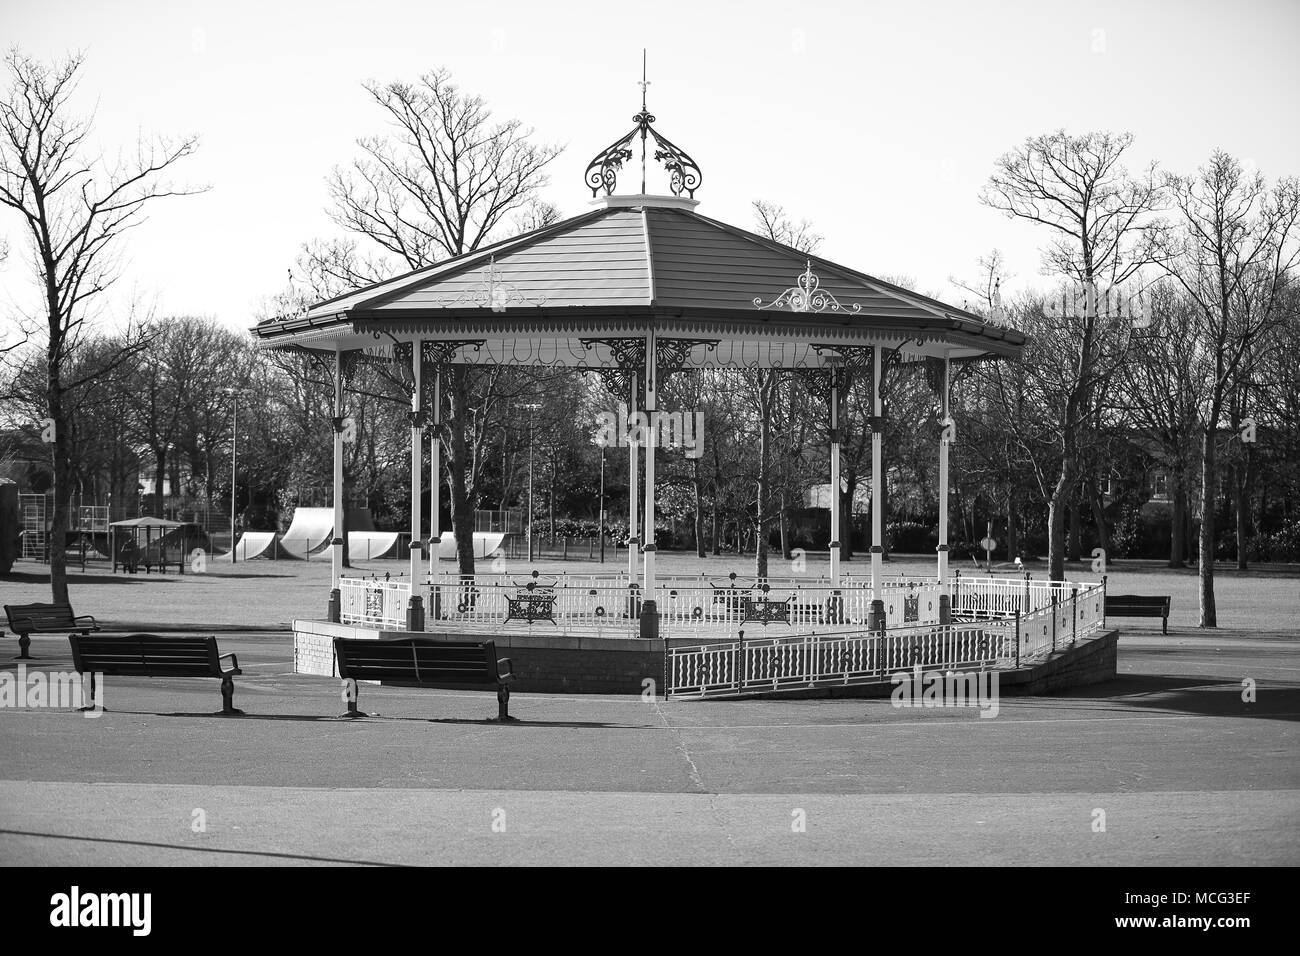 The Bandstand - Stock Image